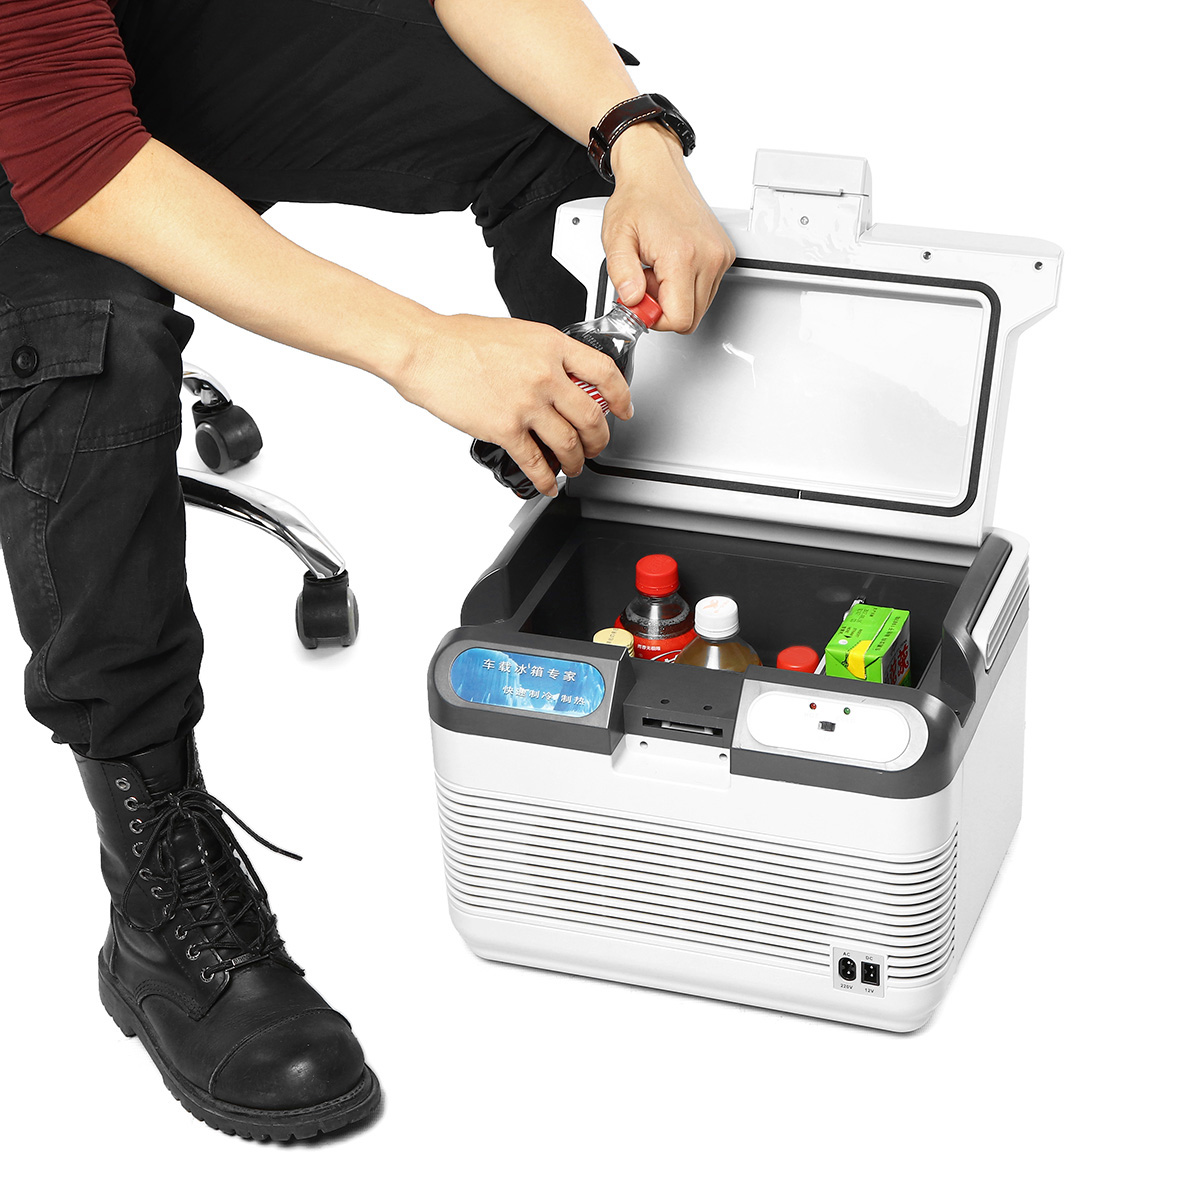 Mini Freezer Fridge Refrigerator Cooling Travel Portable 12L 12V Home for Heating-Box title=